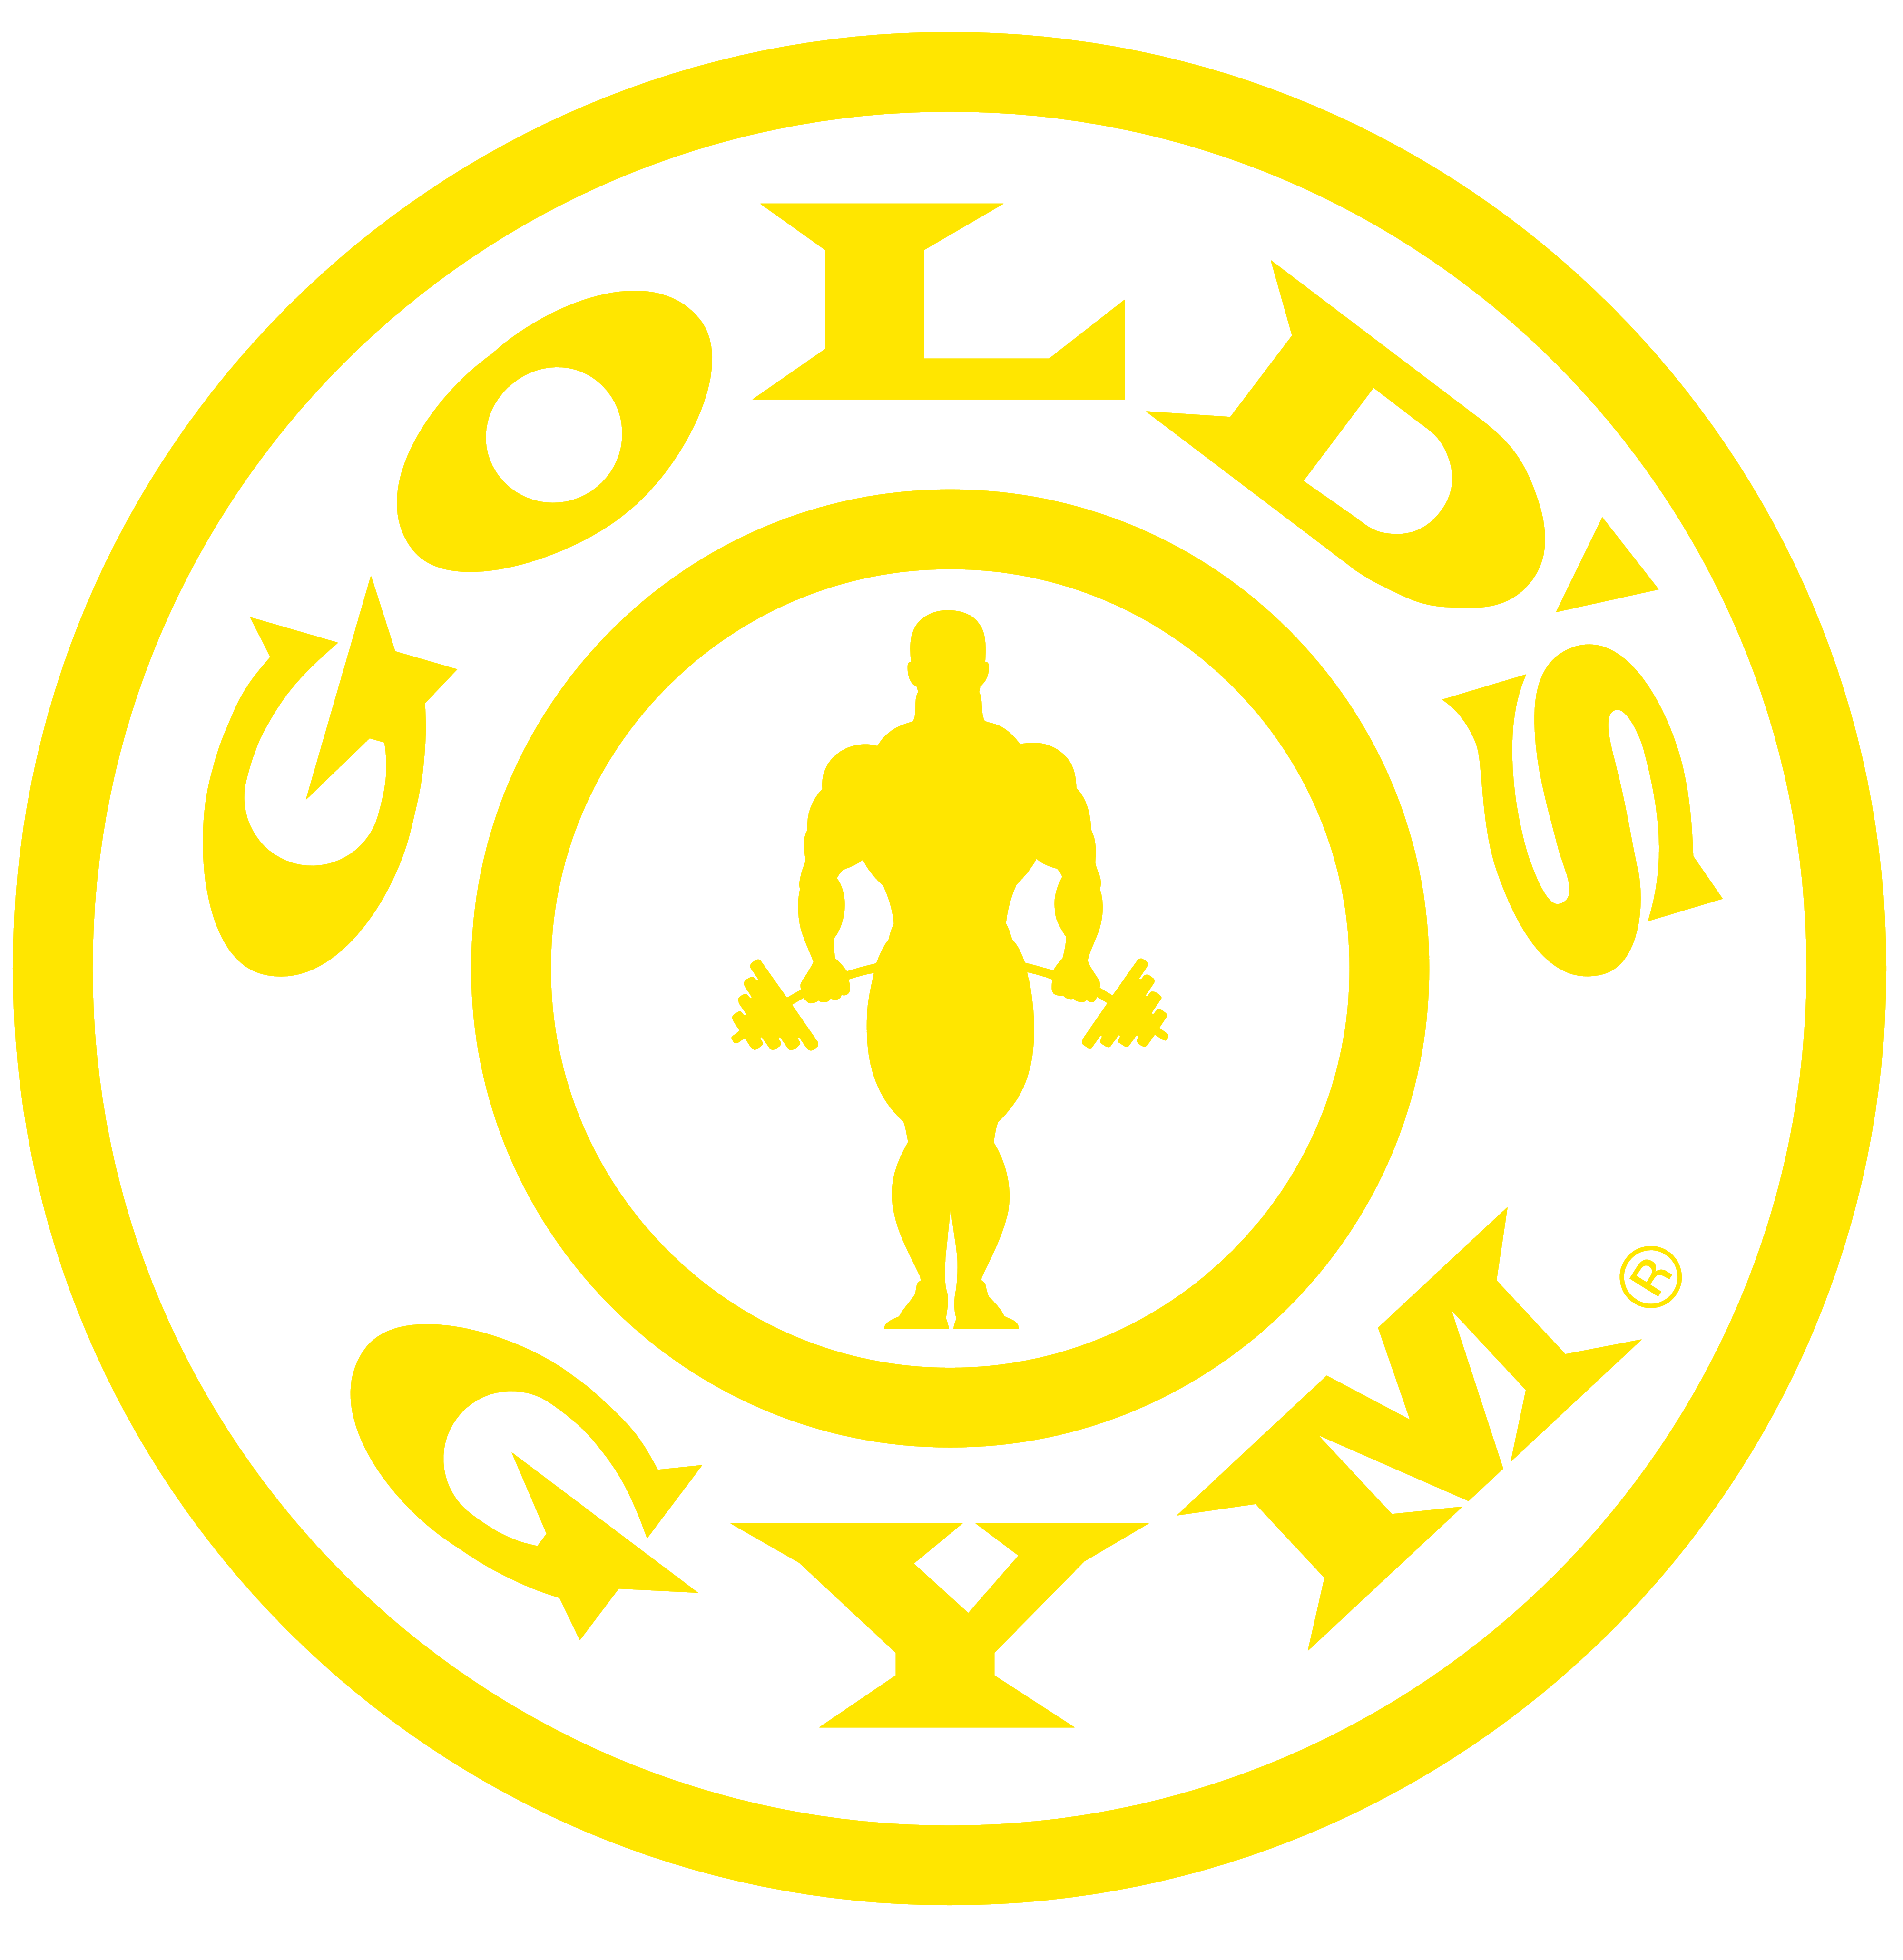 Gold's Gym.